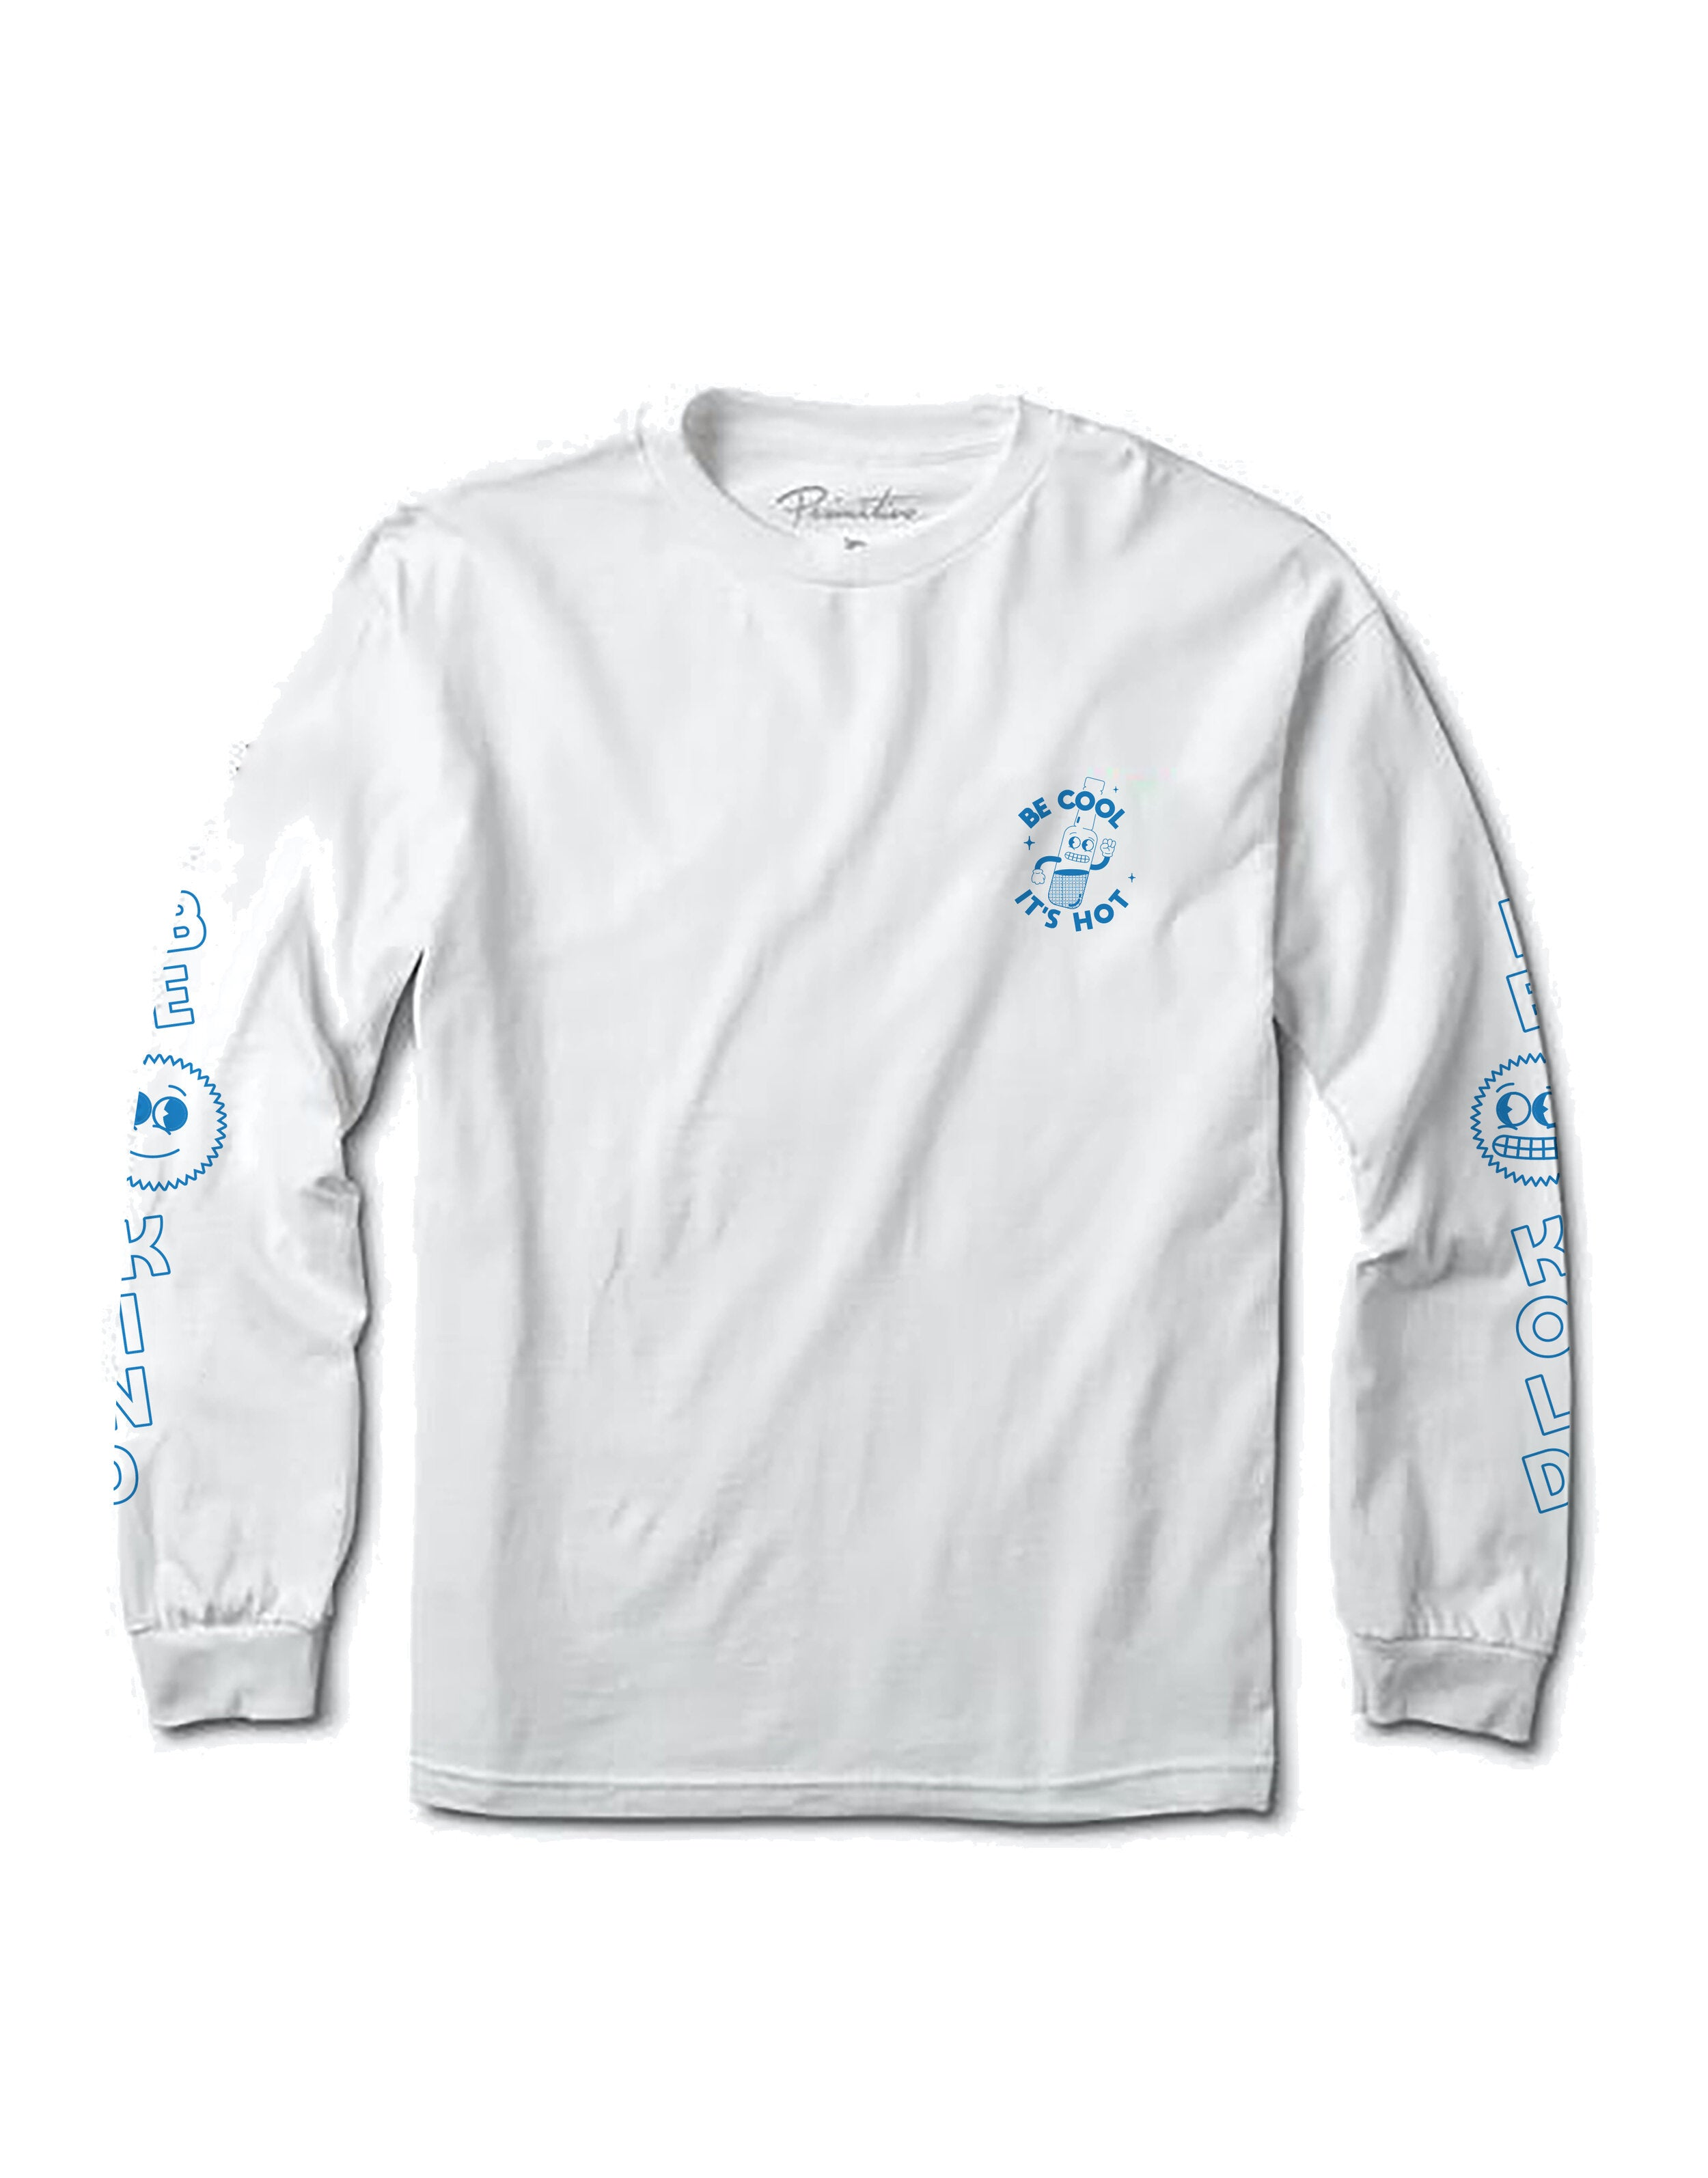 Alive and Kickin' Long Sleeve T-Shirt - White